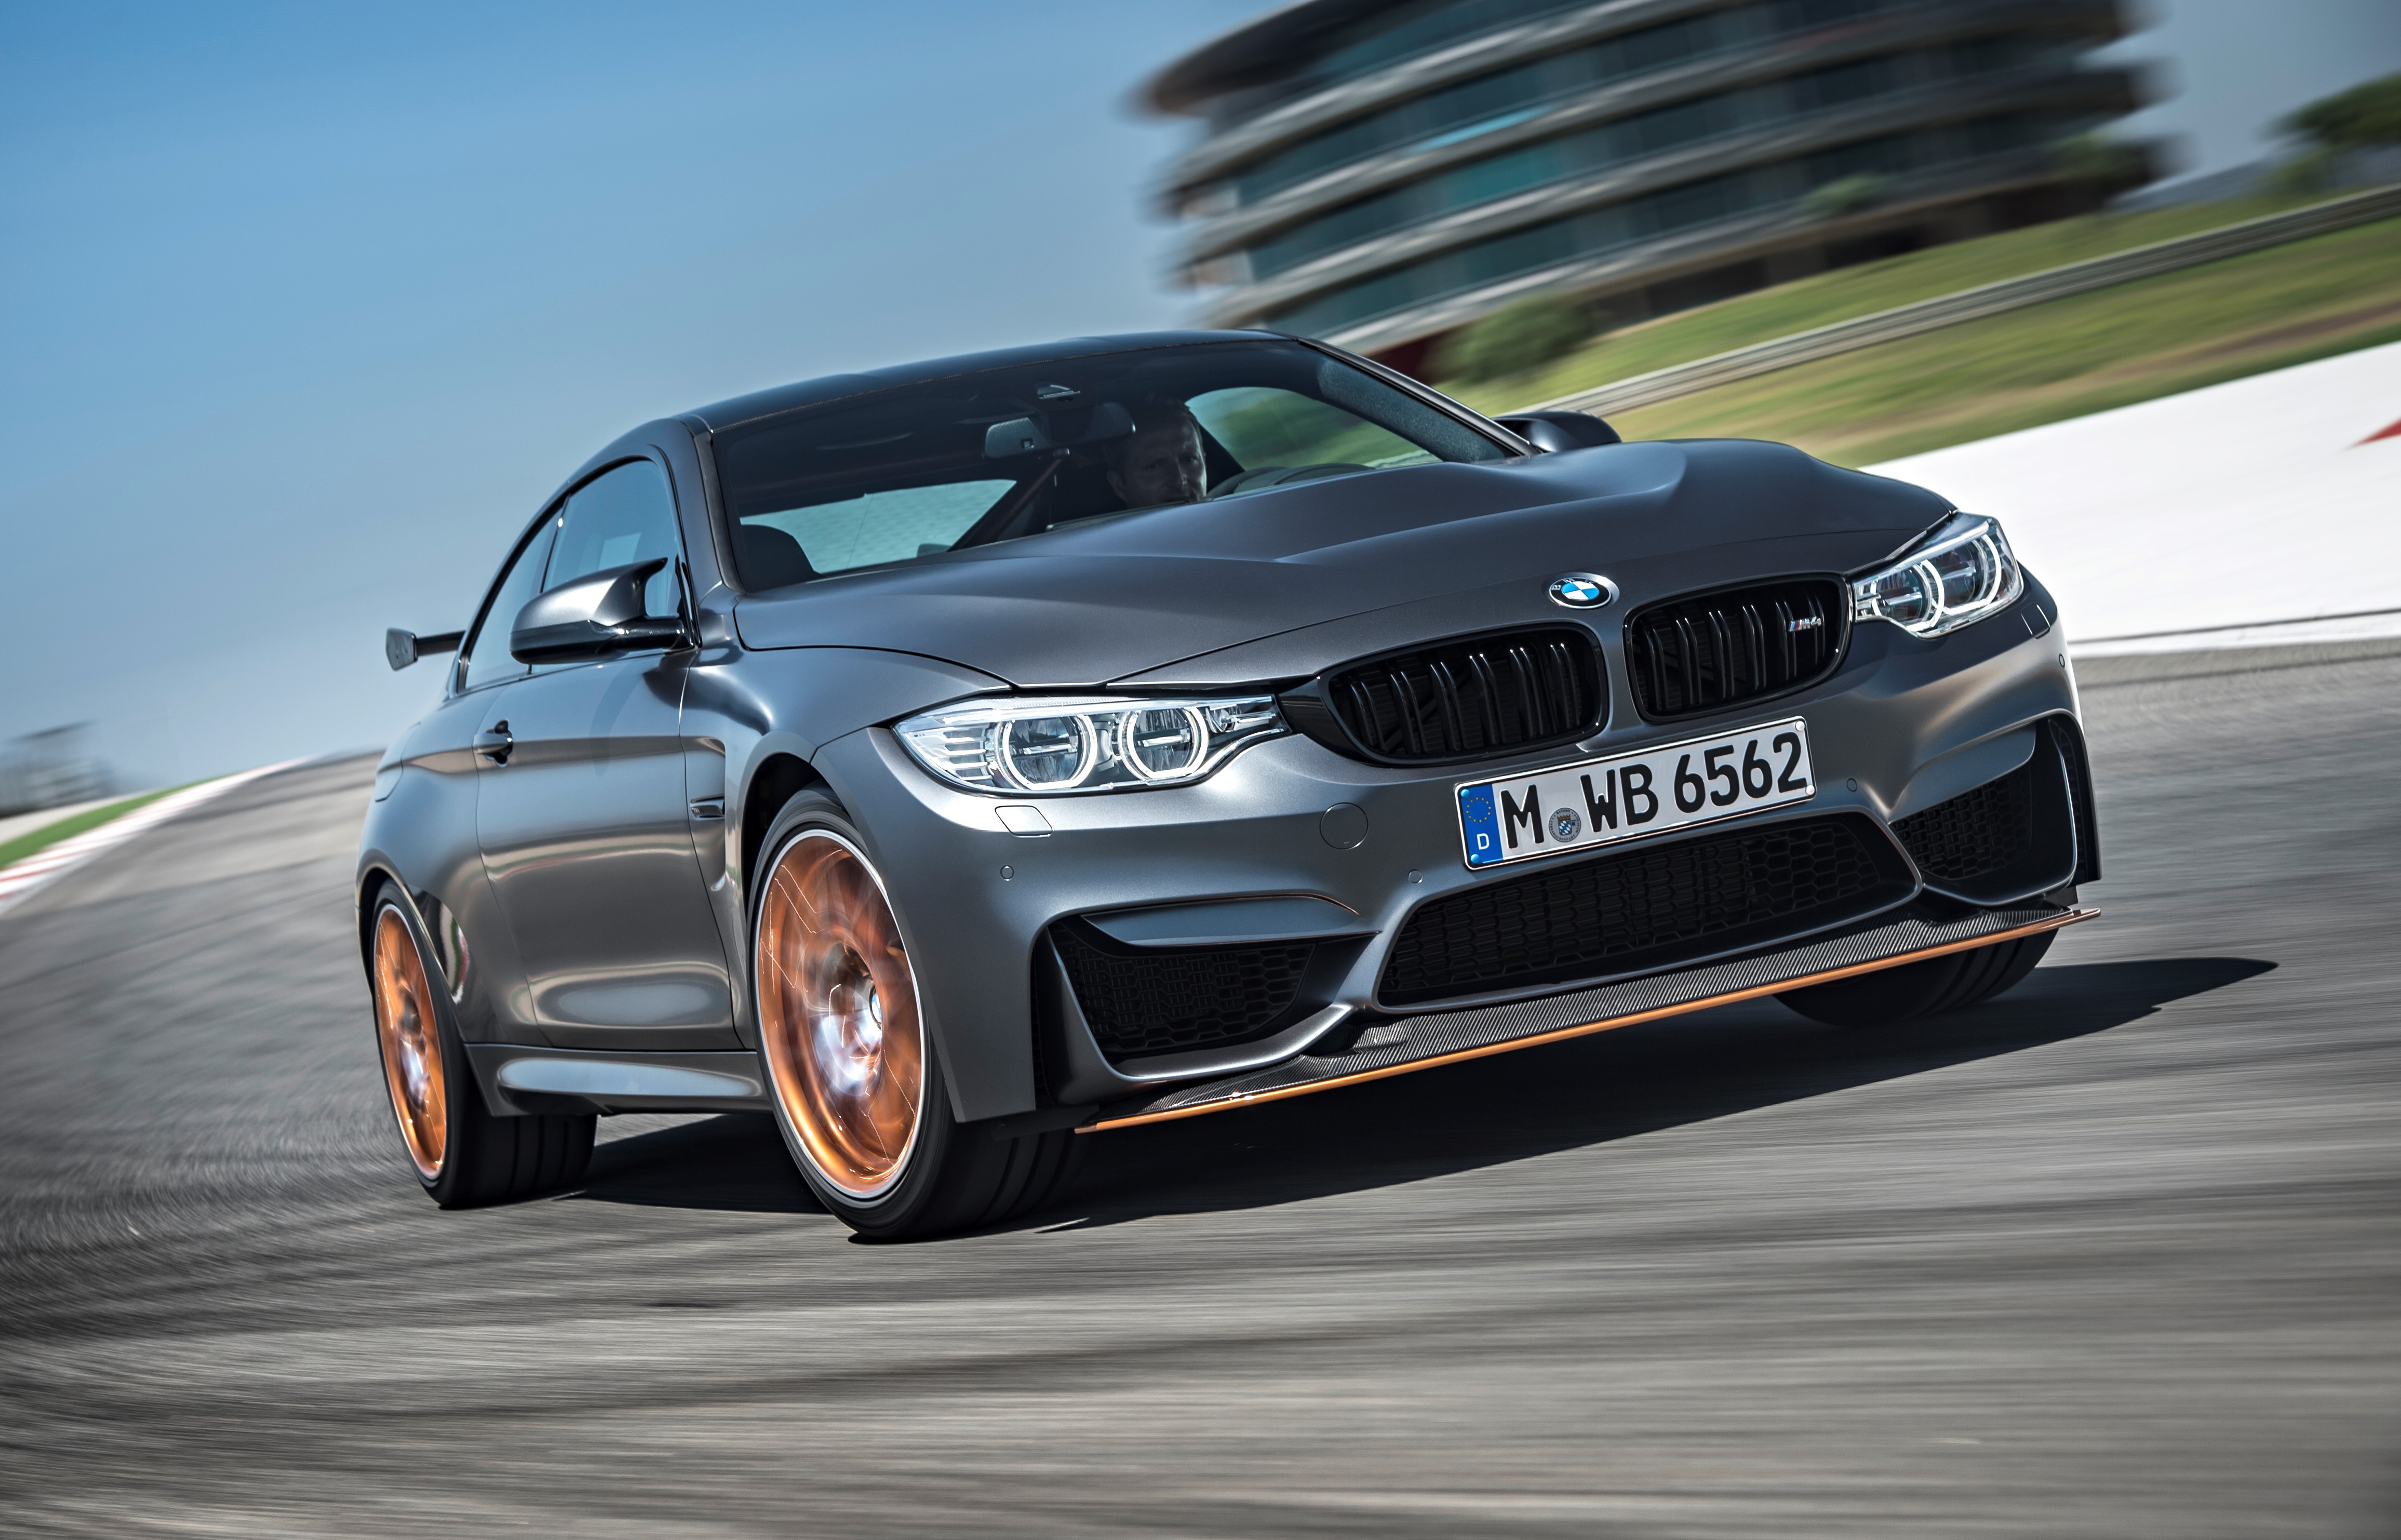 New Bmw M4 Gts Is Bmw S Fastest Road Car Ever Motrface